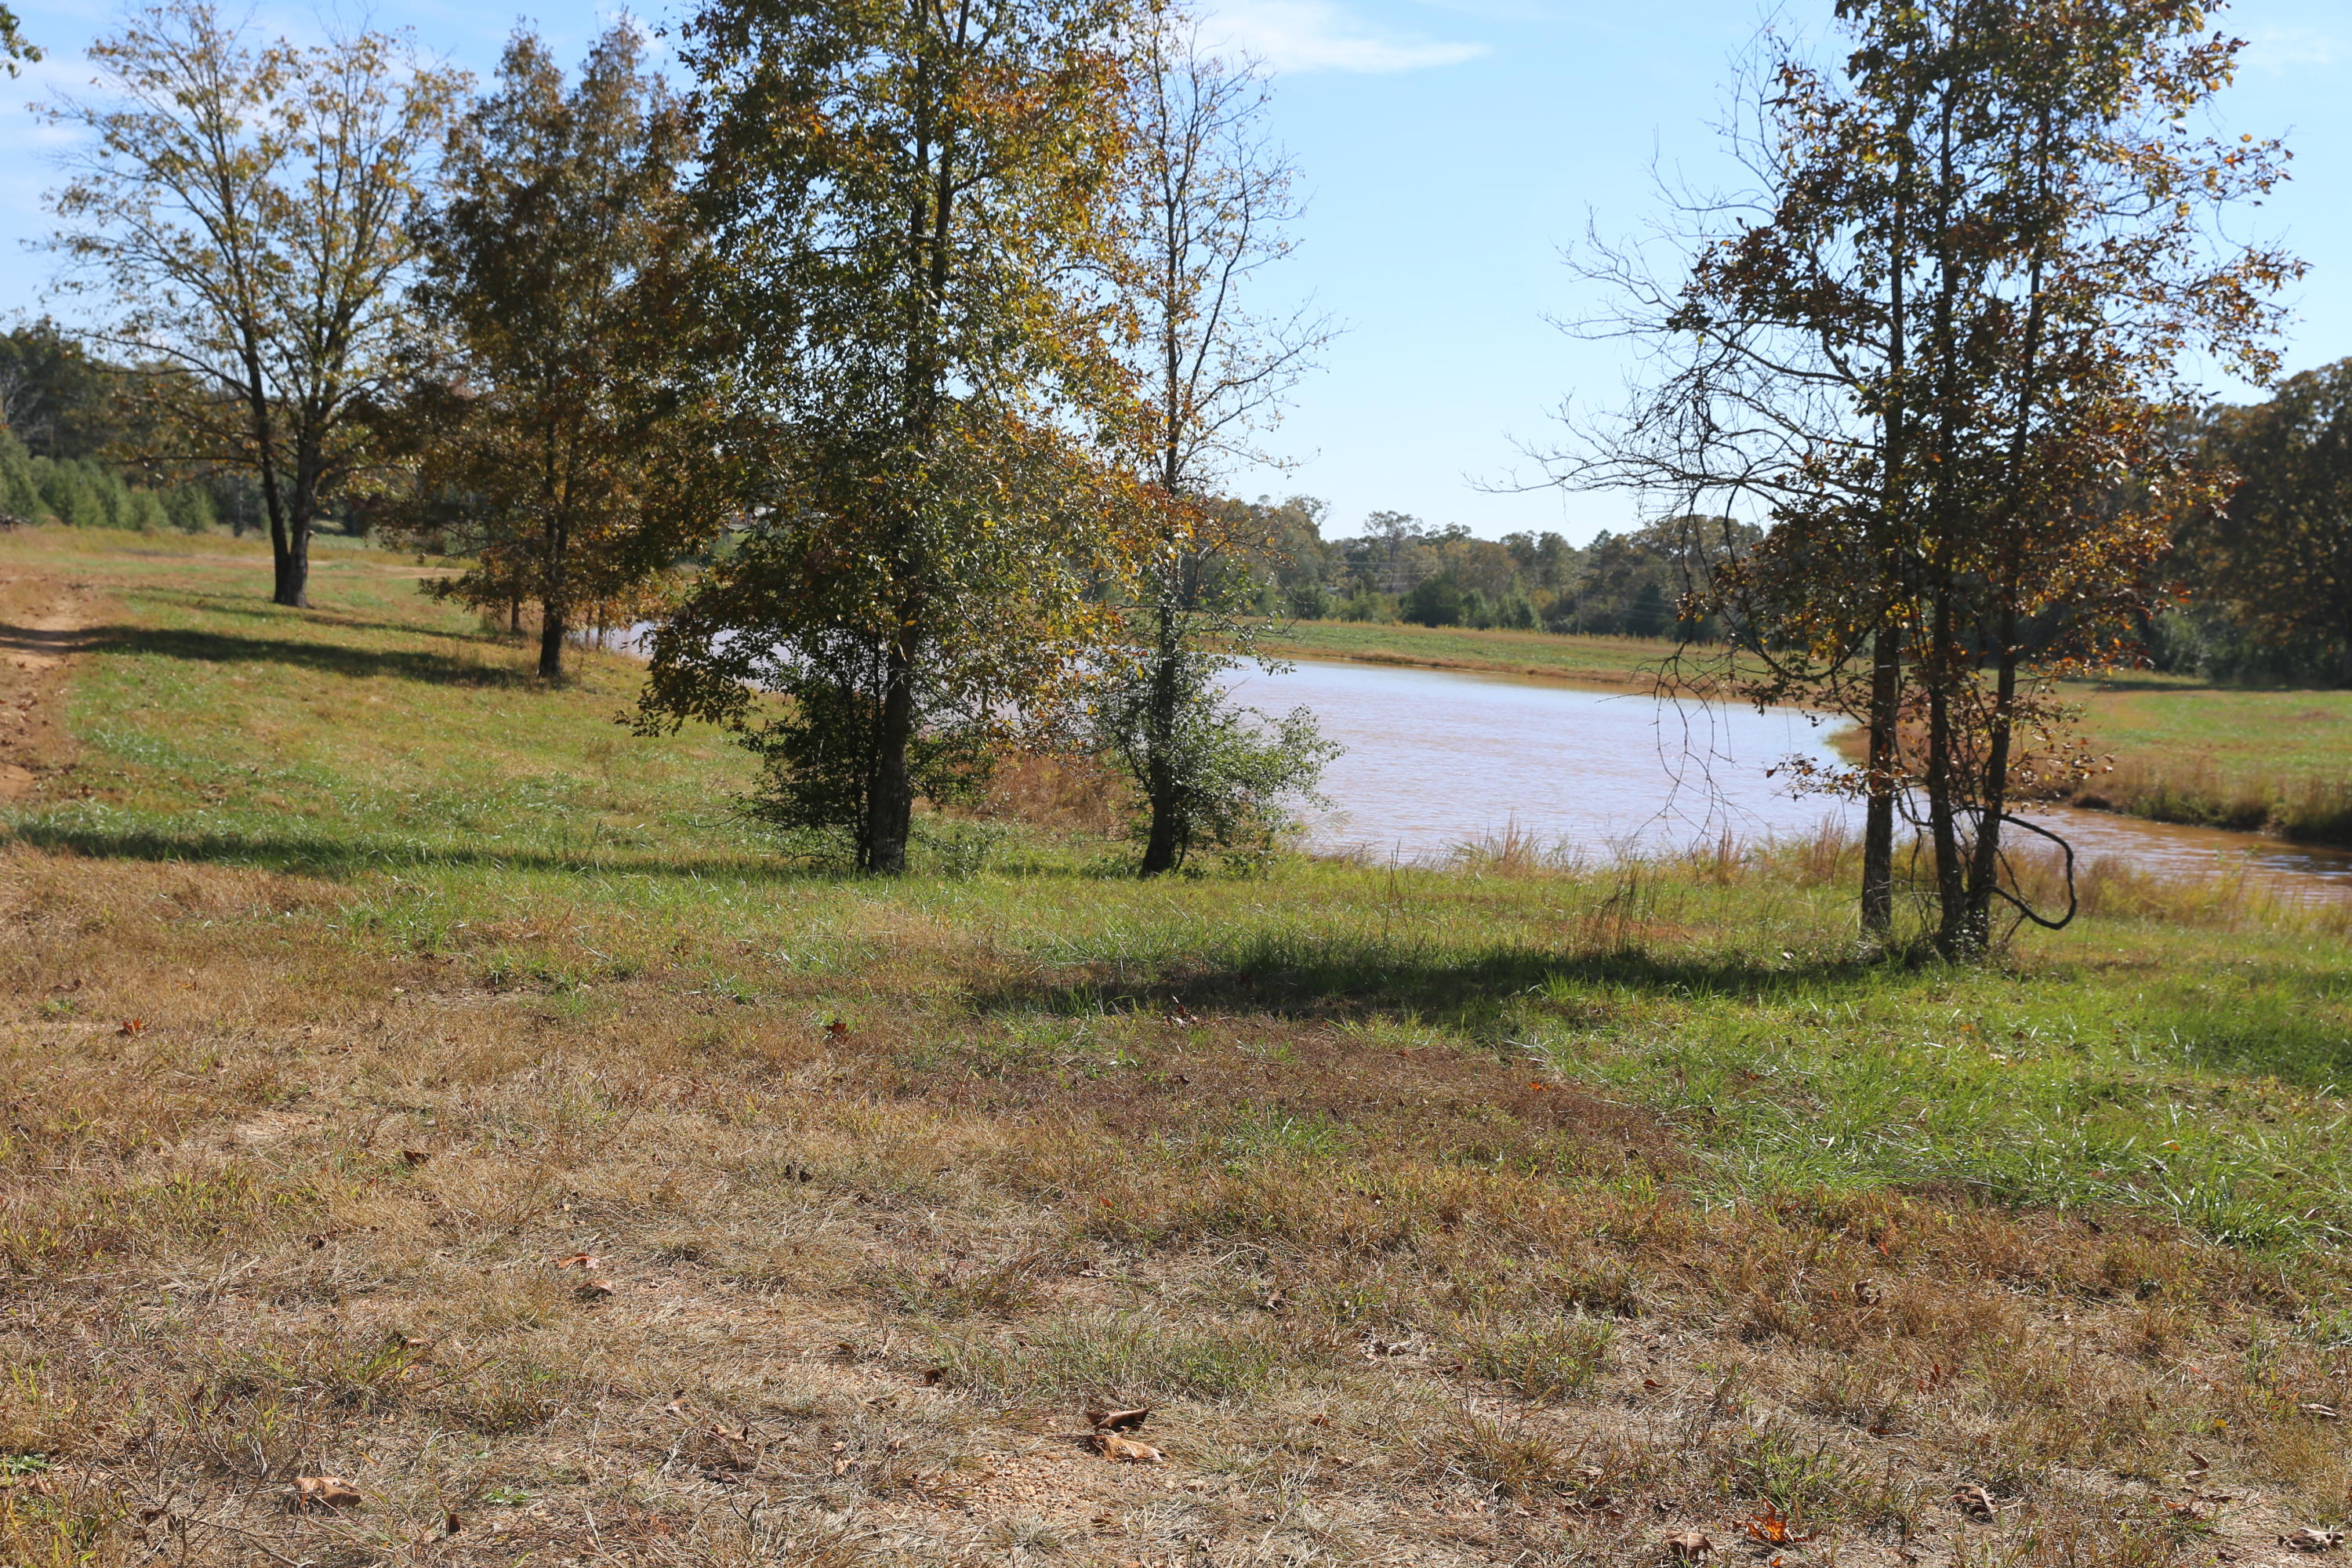 000 Wild Turkey Drive Block 1 Lot 18 Property Photo